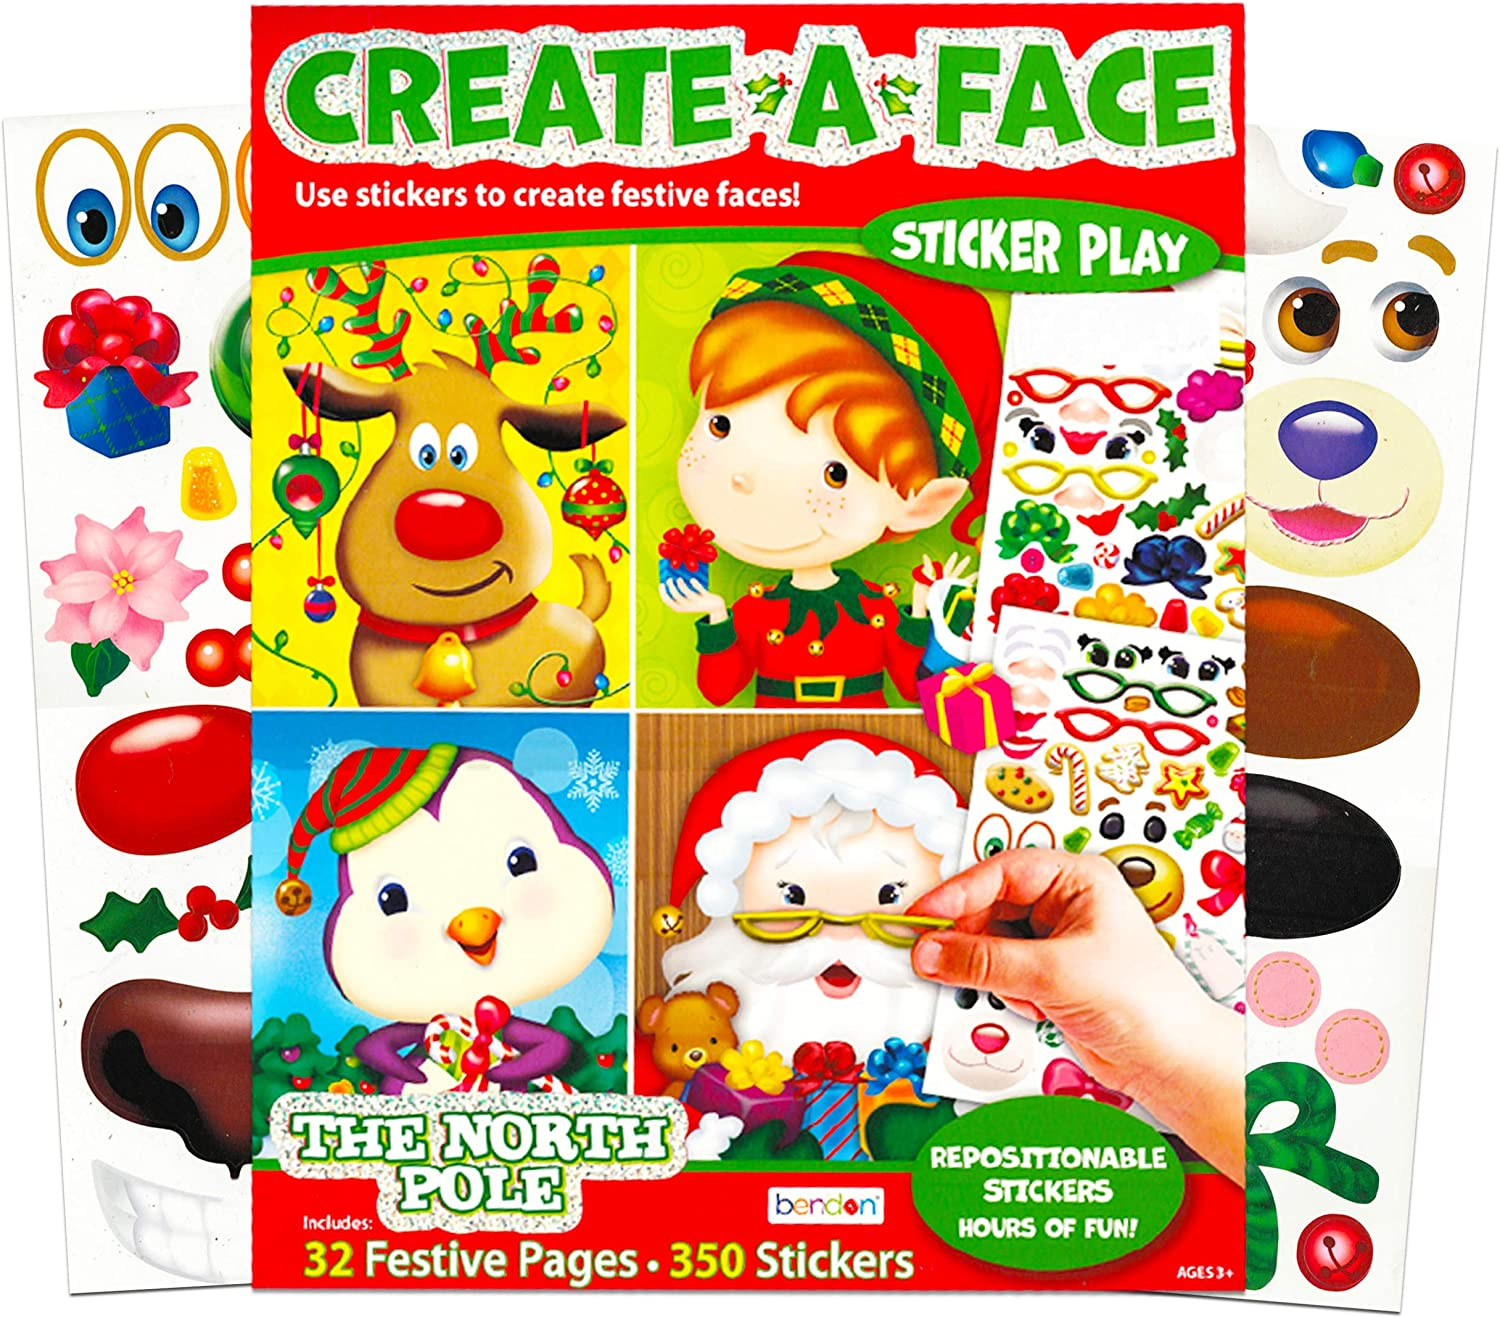 Reindeer Festive Faces and 350 Stickers Giant Christmas Sticker Book with 32 Santa Bendon Publishing Christmas Make a Face Sticker Book for Kids Toddlers Sticker Face Activity Set Elf